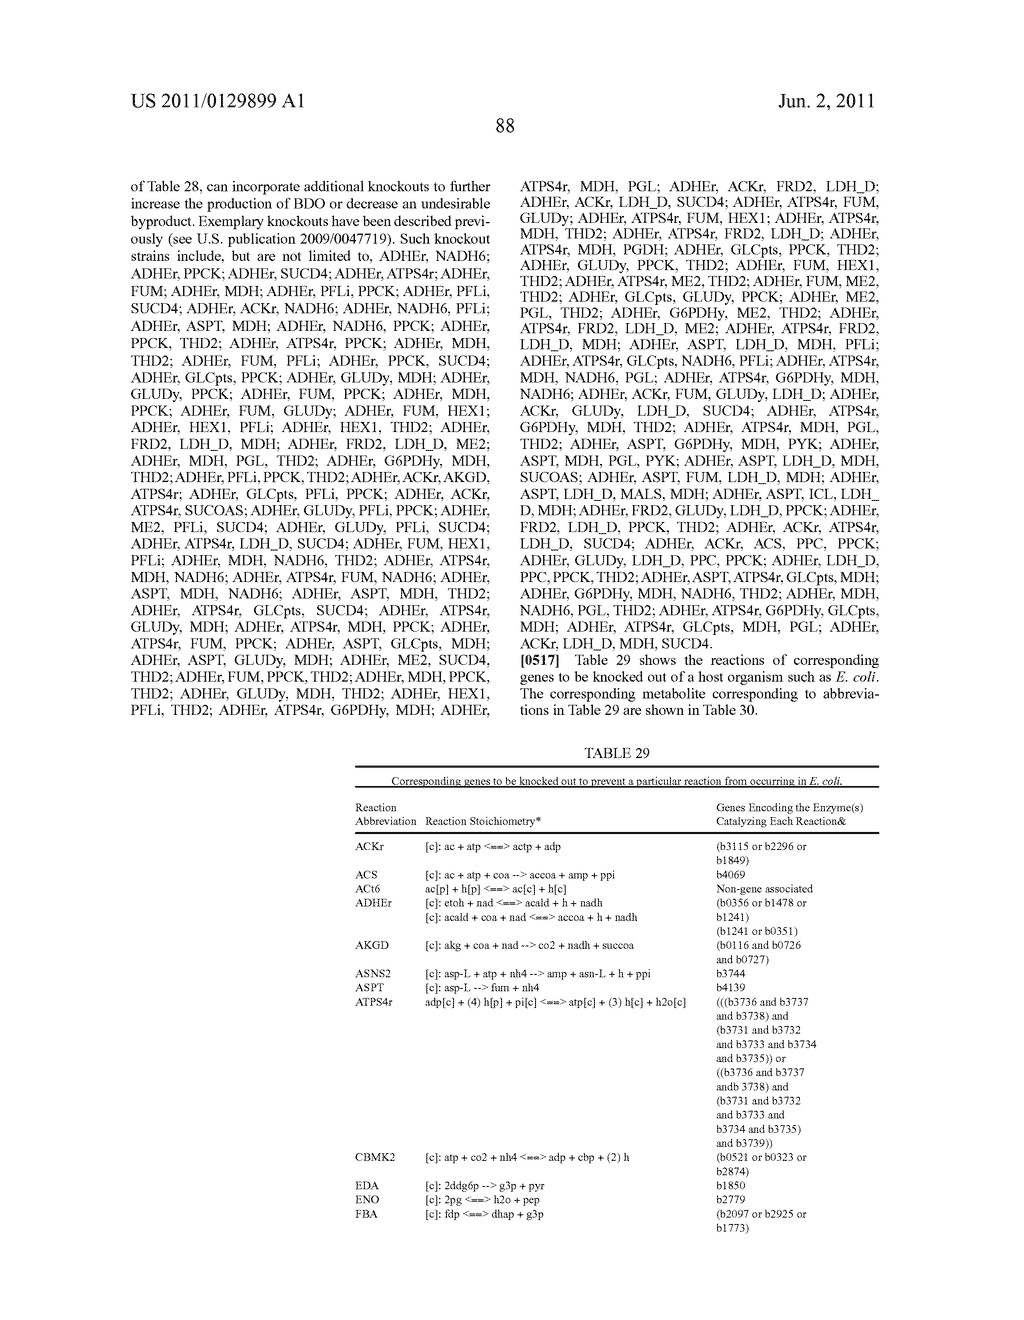 MICROORGANISMS FOR THE PRODUCTION OF 1,4-BUTANEDIOL, 4-HYDROXYBUTANAL,     4-HYDROXYBUTYRYL-COA, PUTRESCINE AND RELATED COMPOUNDS, AND METHODS     RELATED THERETO - diagram, schematic, and image 157